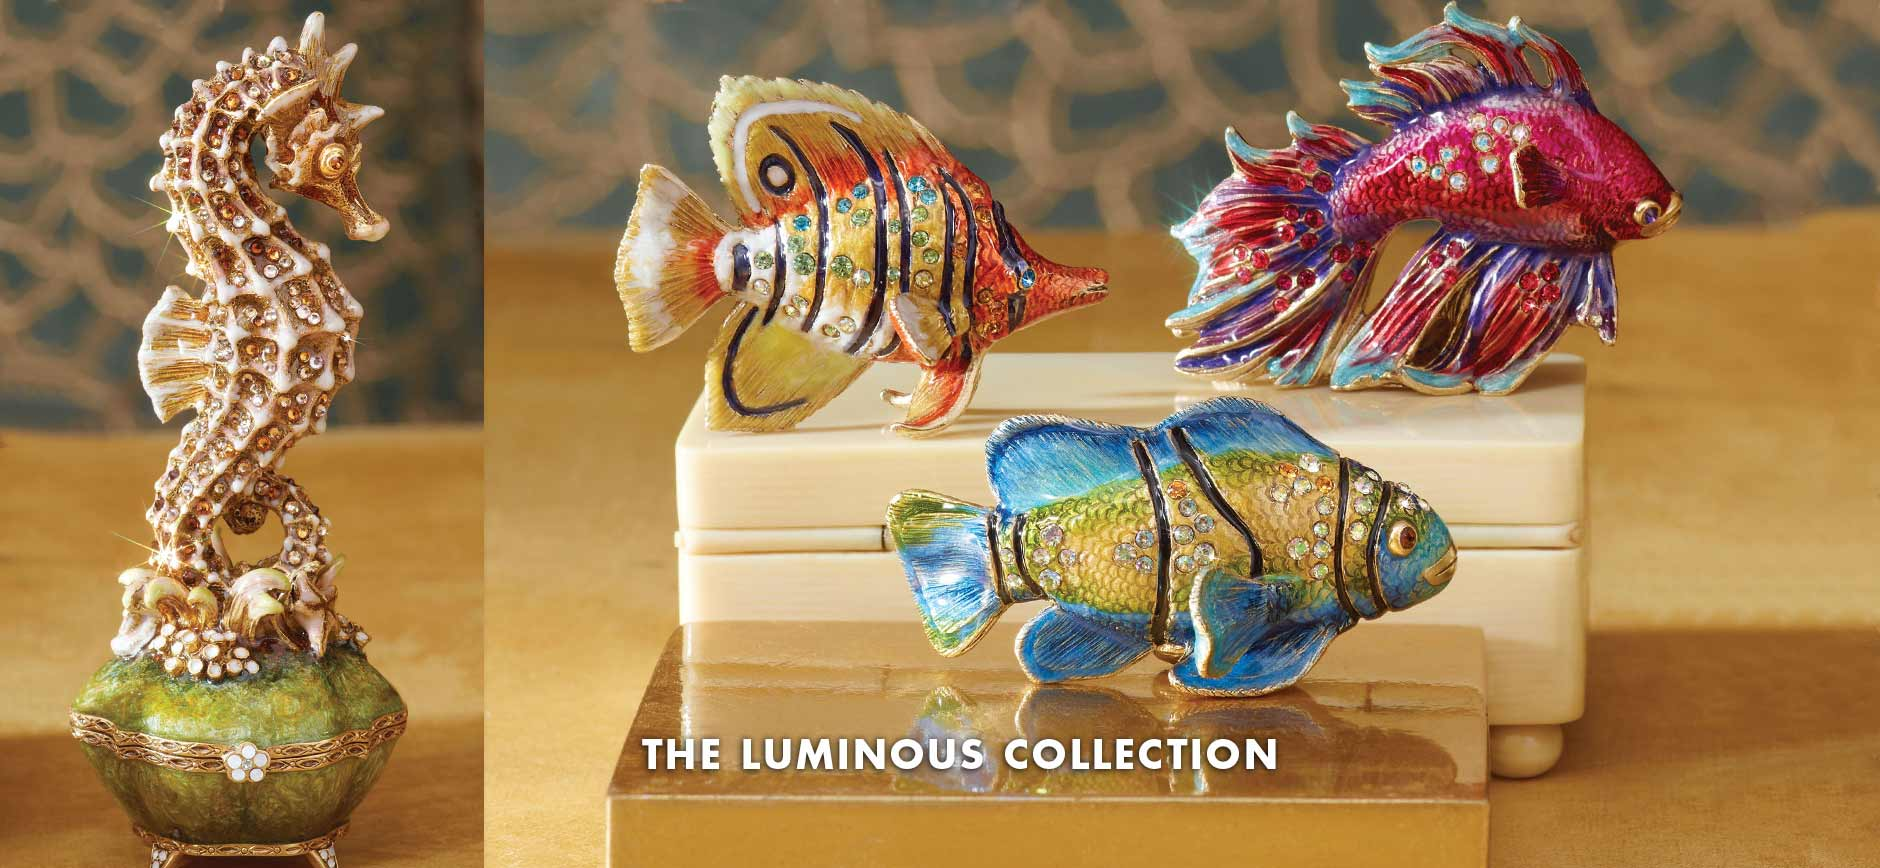 Neiman Marcus Wedding Gifts: Jay Strongwater Ornaments, Picture Frames & Collectibles